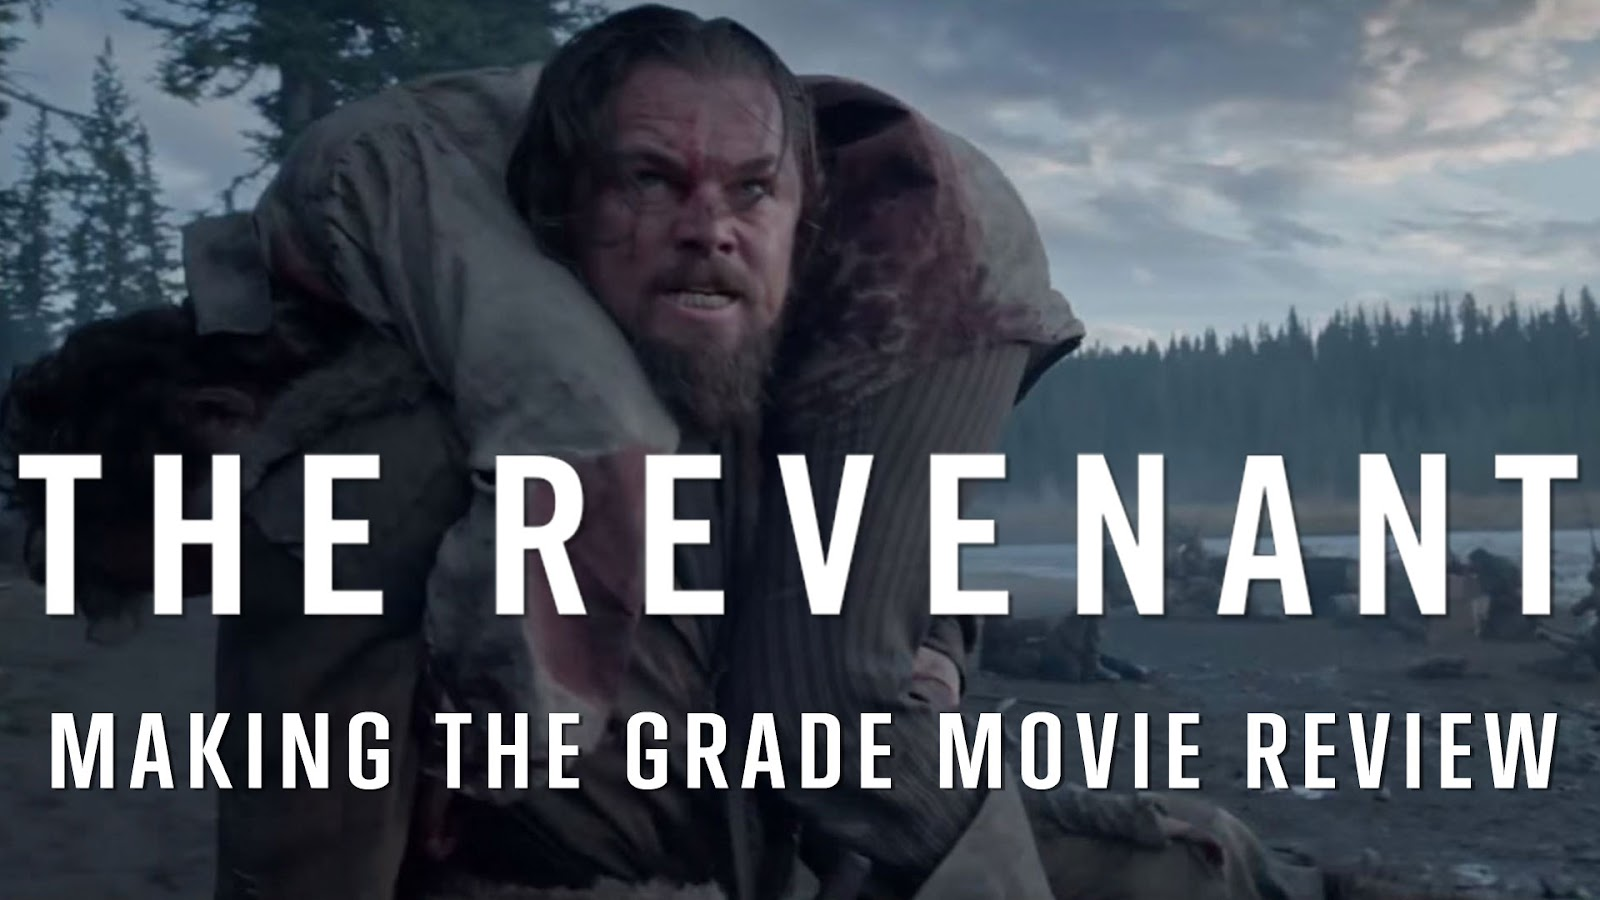 HD The Revenant photos screen shots poster